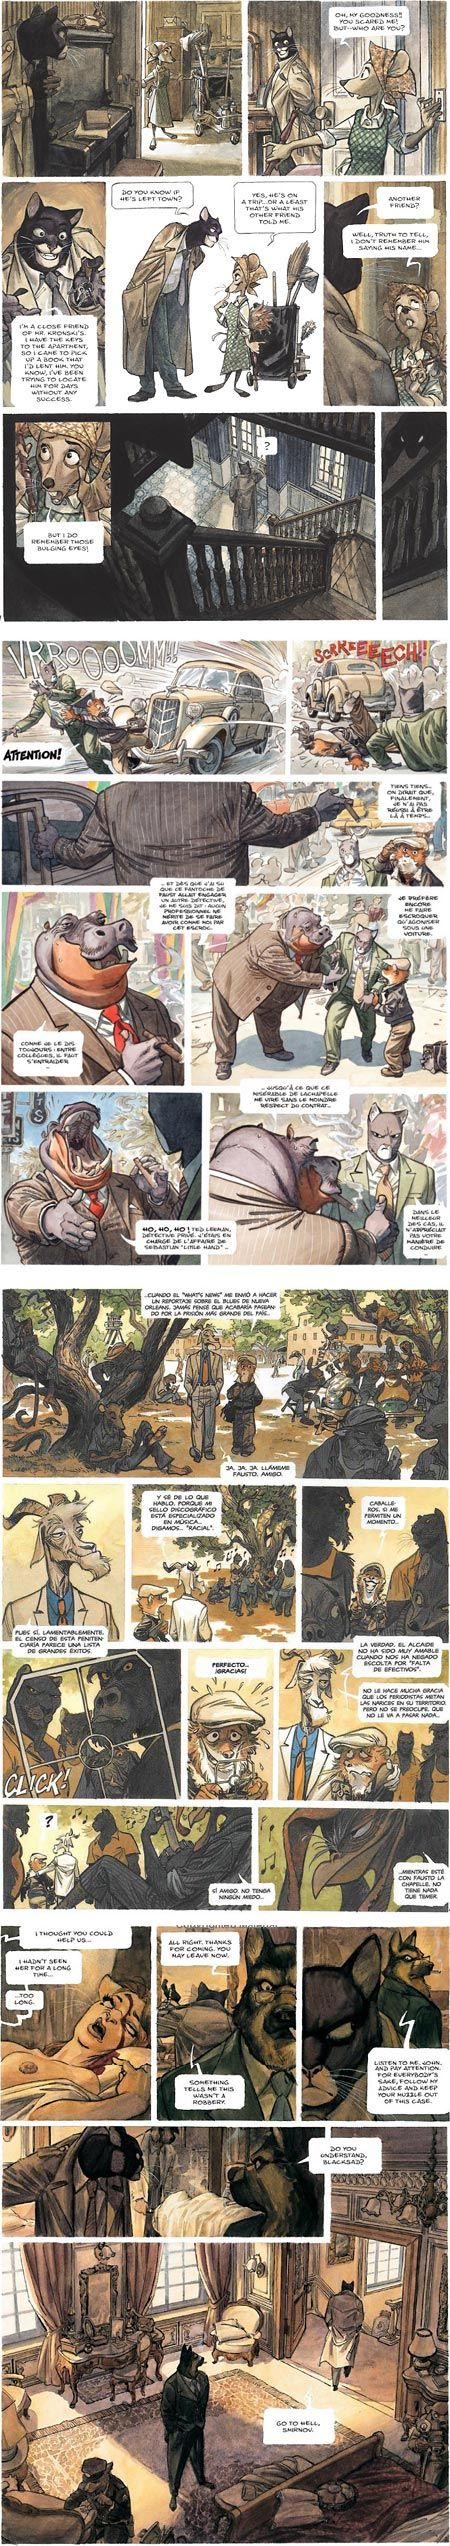 Blacksad (Juanjo Guarnido) -  stunning comic art, wonderfully realized characters, and beautifully rendered backgrounds and settings.